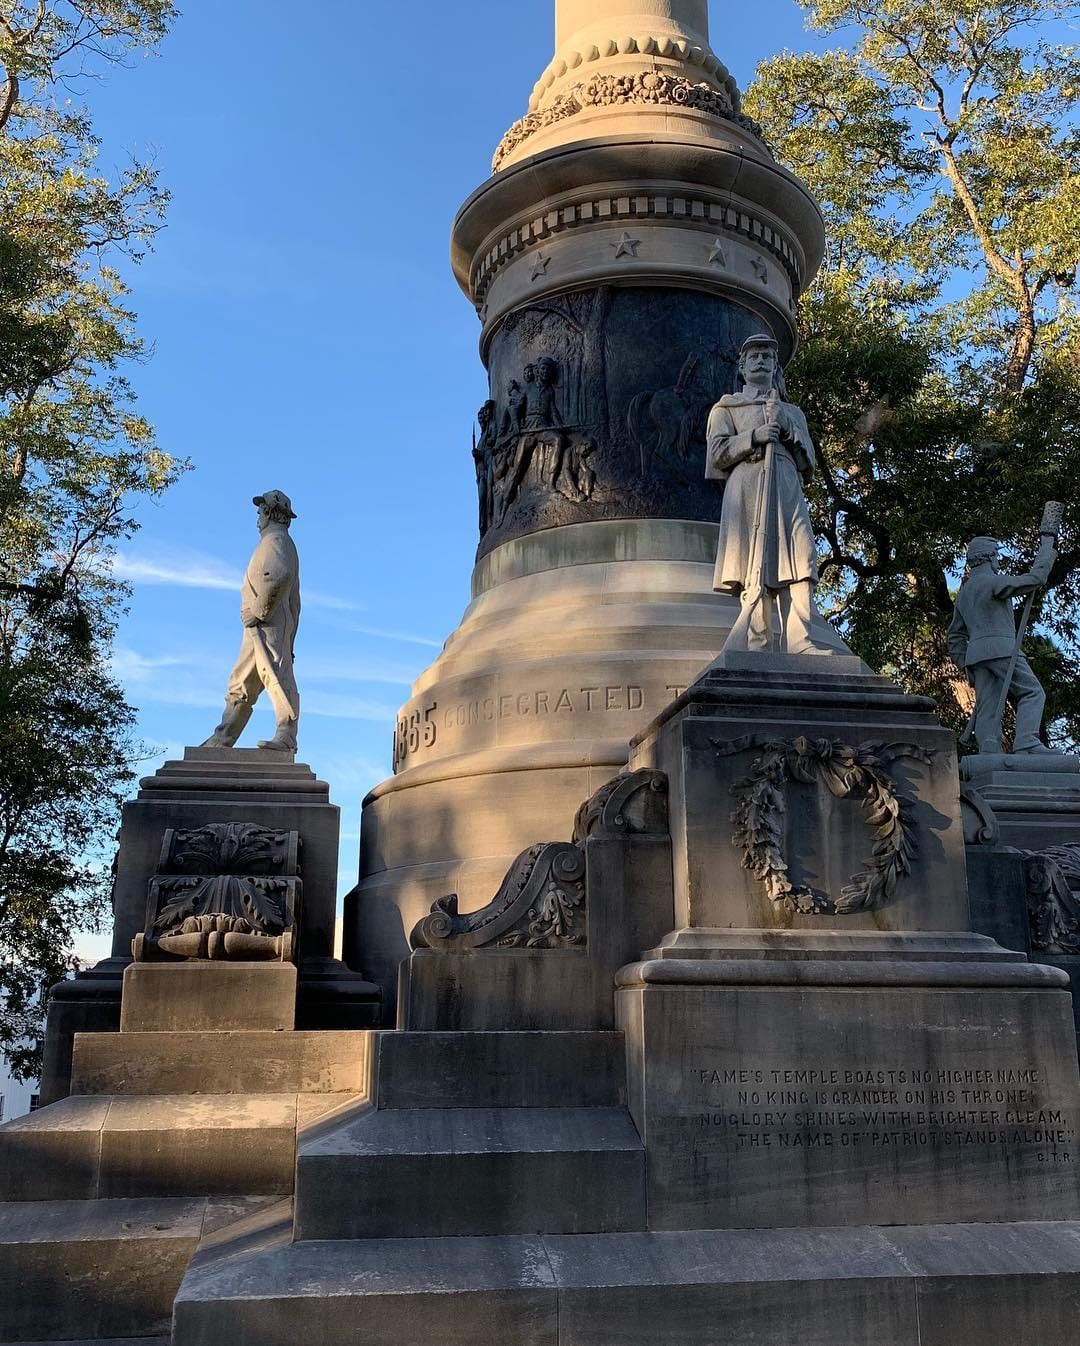 Stone monument to the Civil War with sculptures of soldiers and figures of women signifying victory